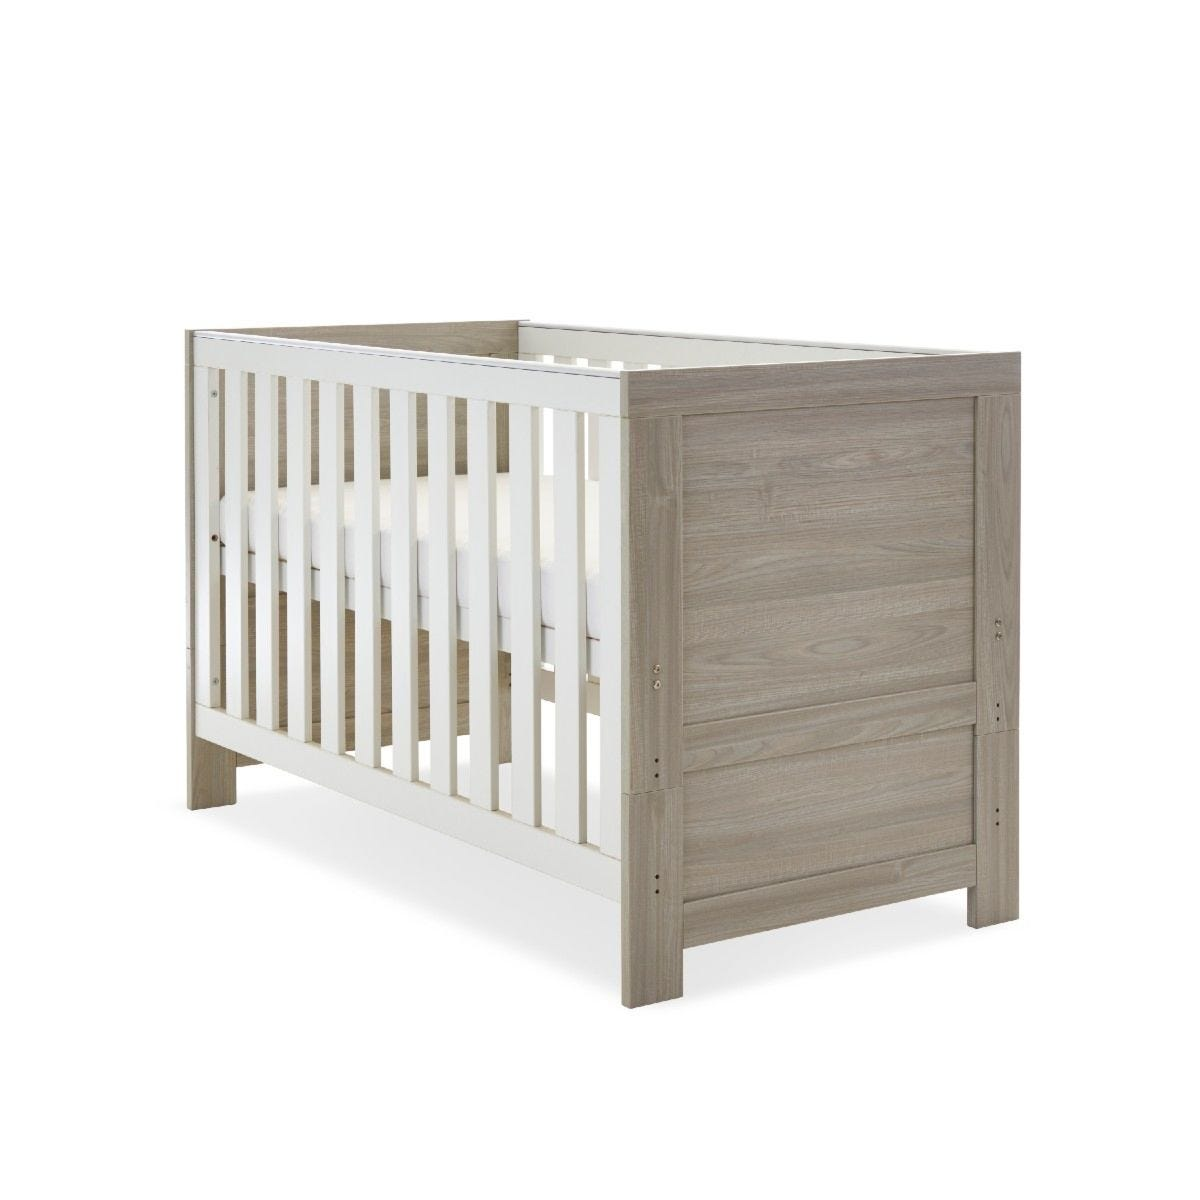 Obaby Nika Cot Bed Grey Wash and White